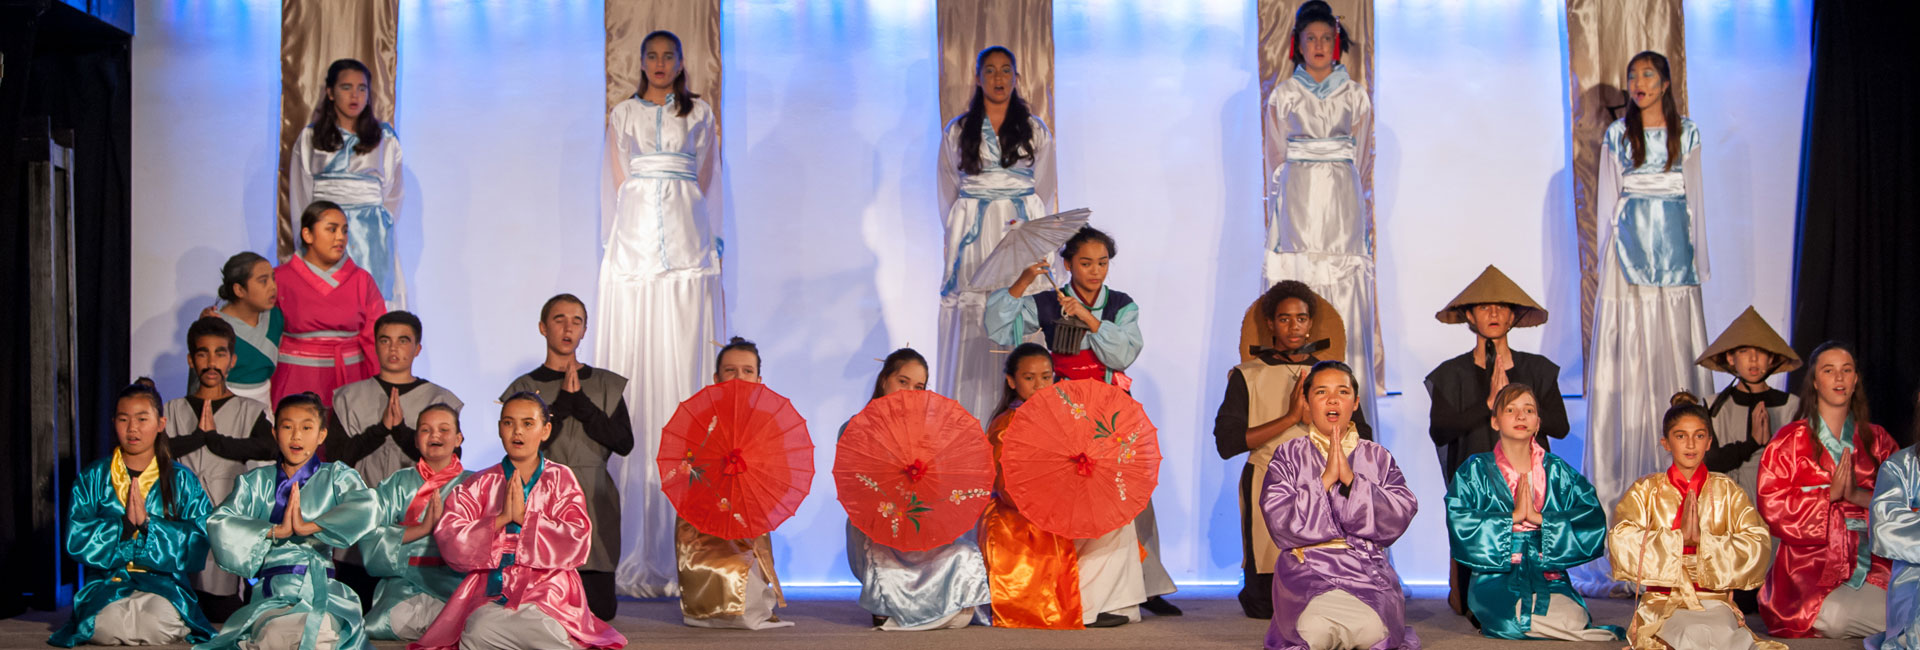 Student cast of Mulan on stage